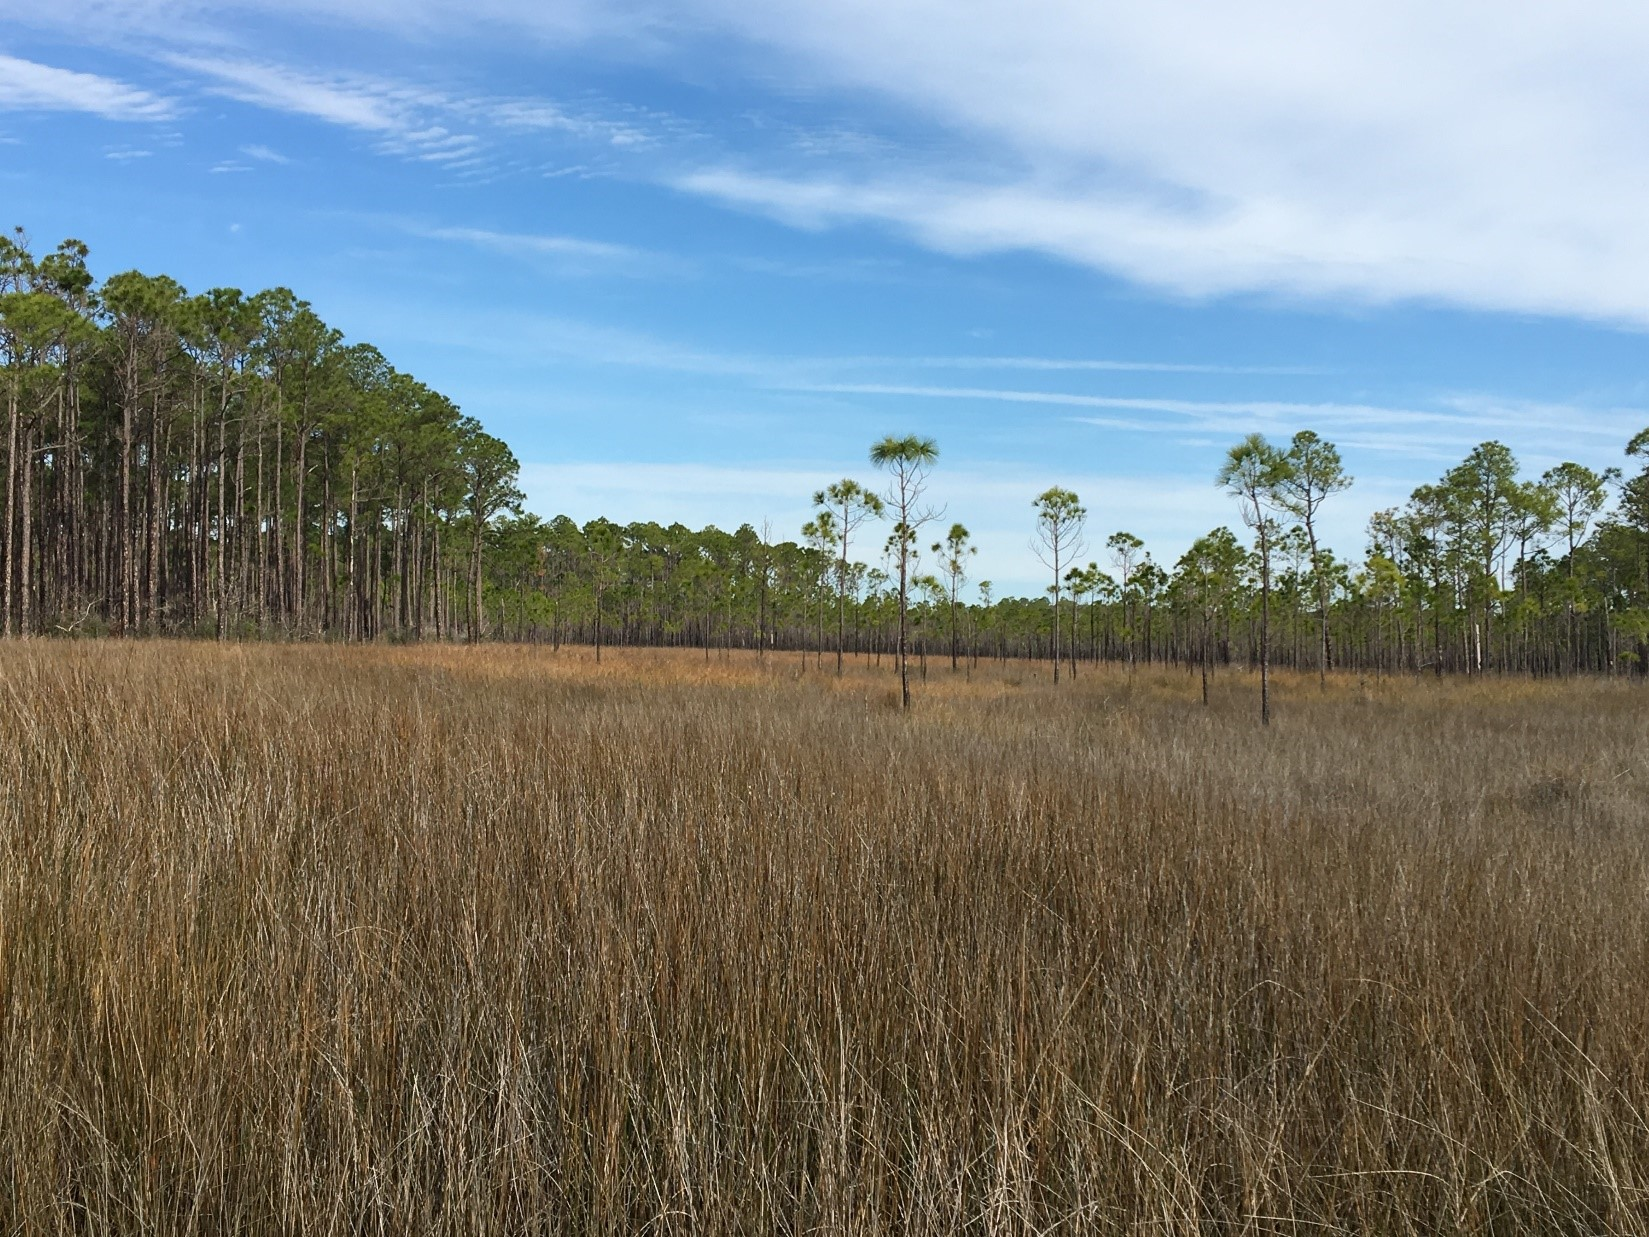 Tall grasses and trees in a marsh landscape in Mississippi.